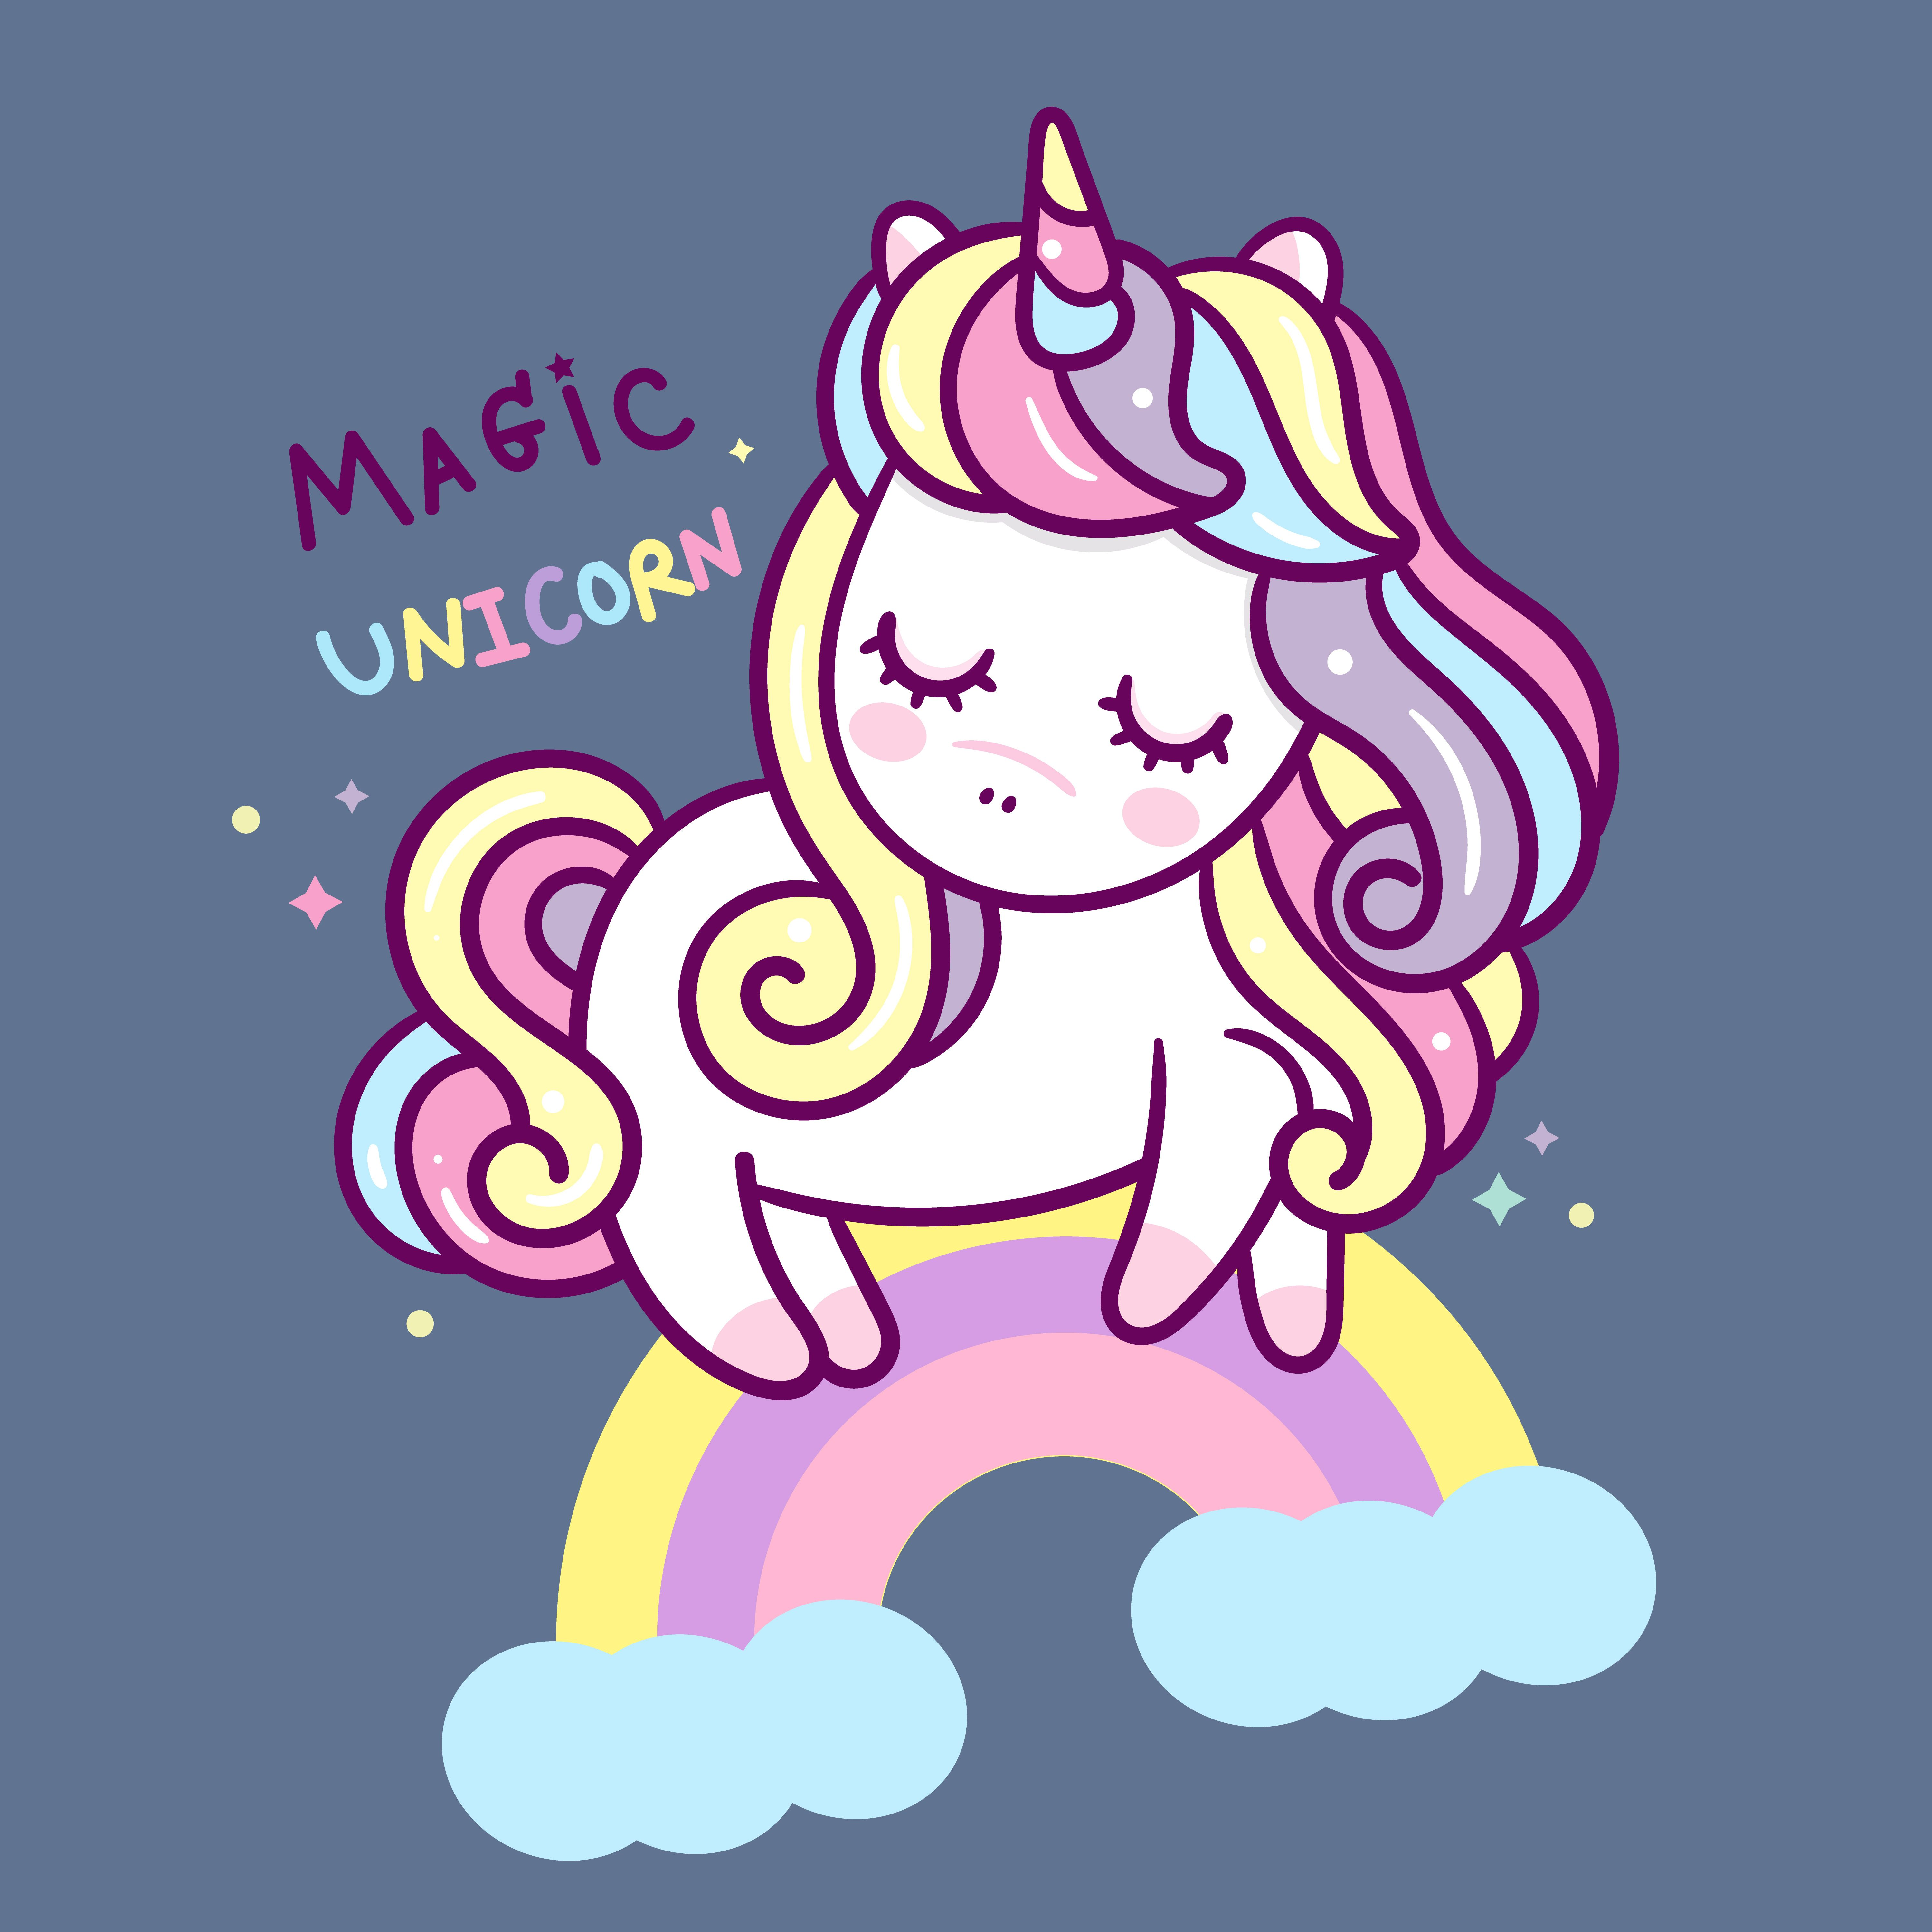 Illustrator of Cute Unicorn vector on the sky and pastel